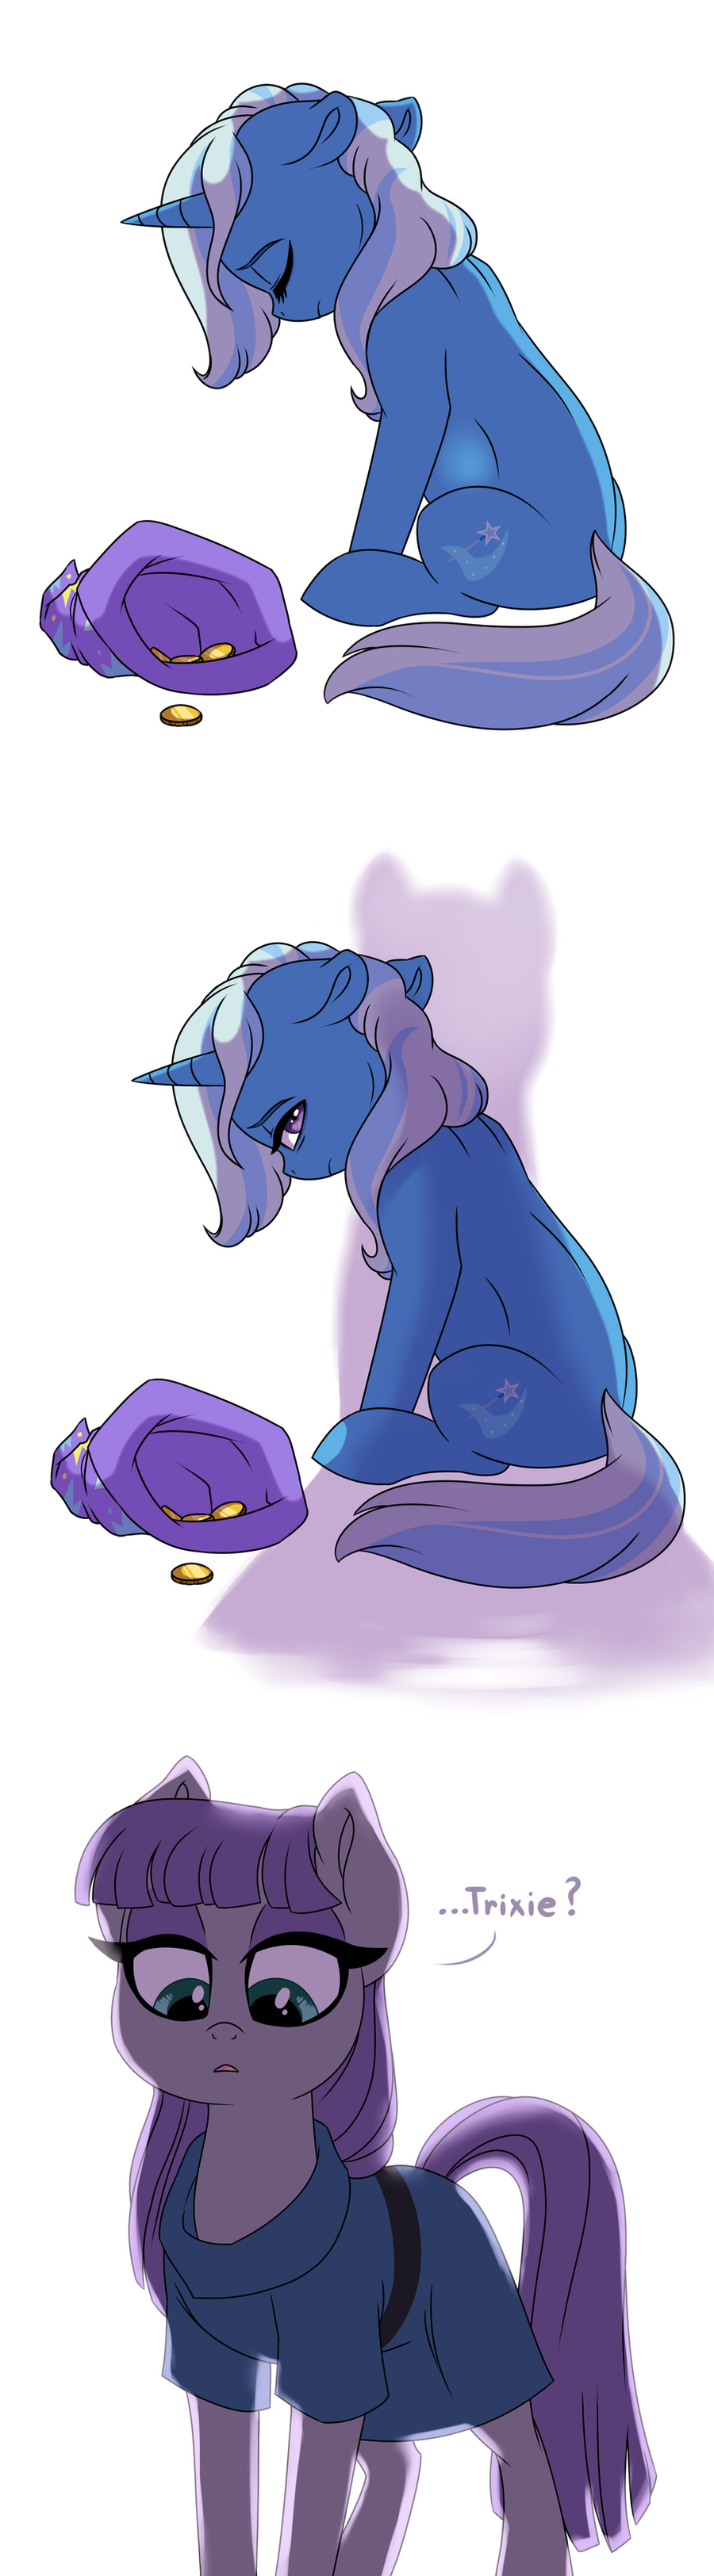 Lost and Found by Lopoddity